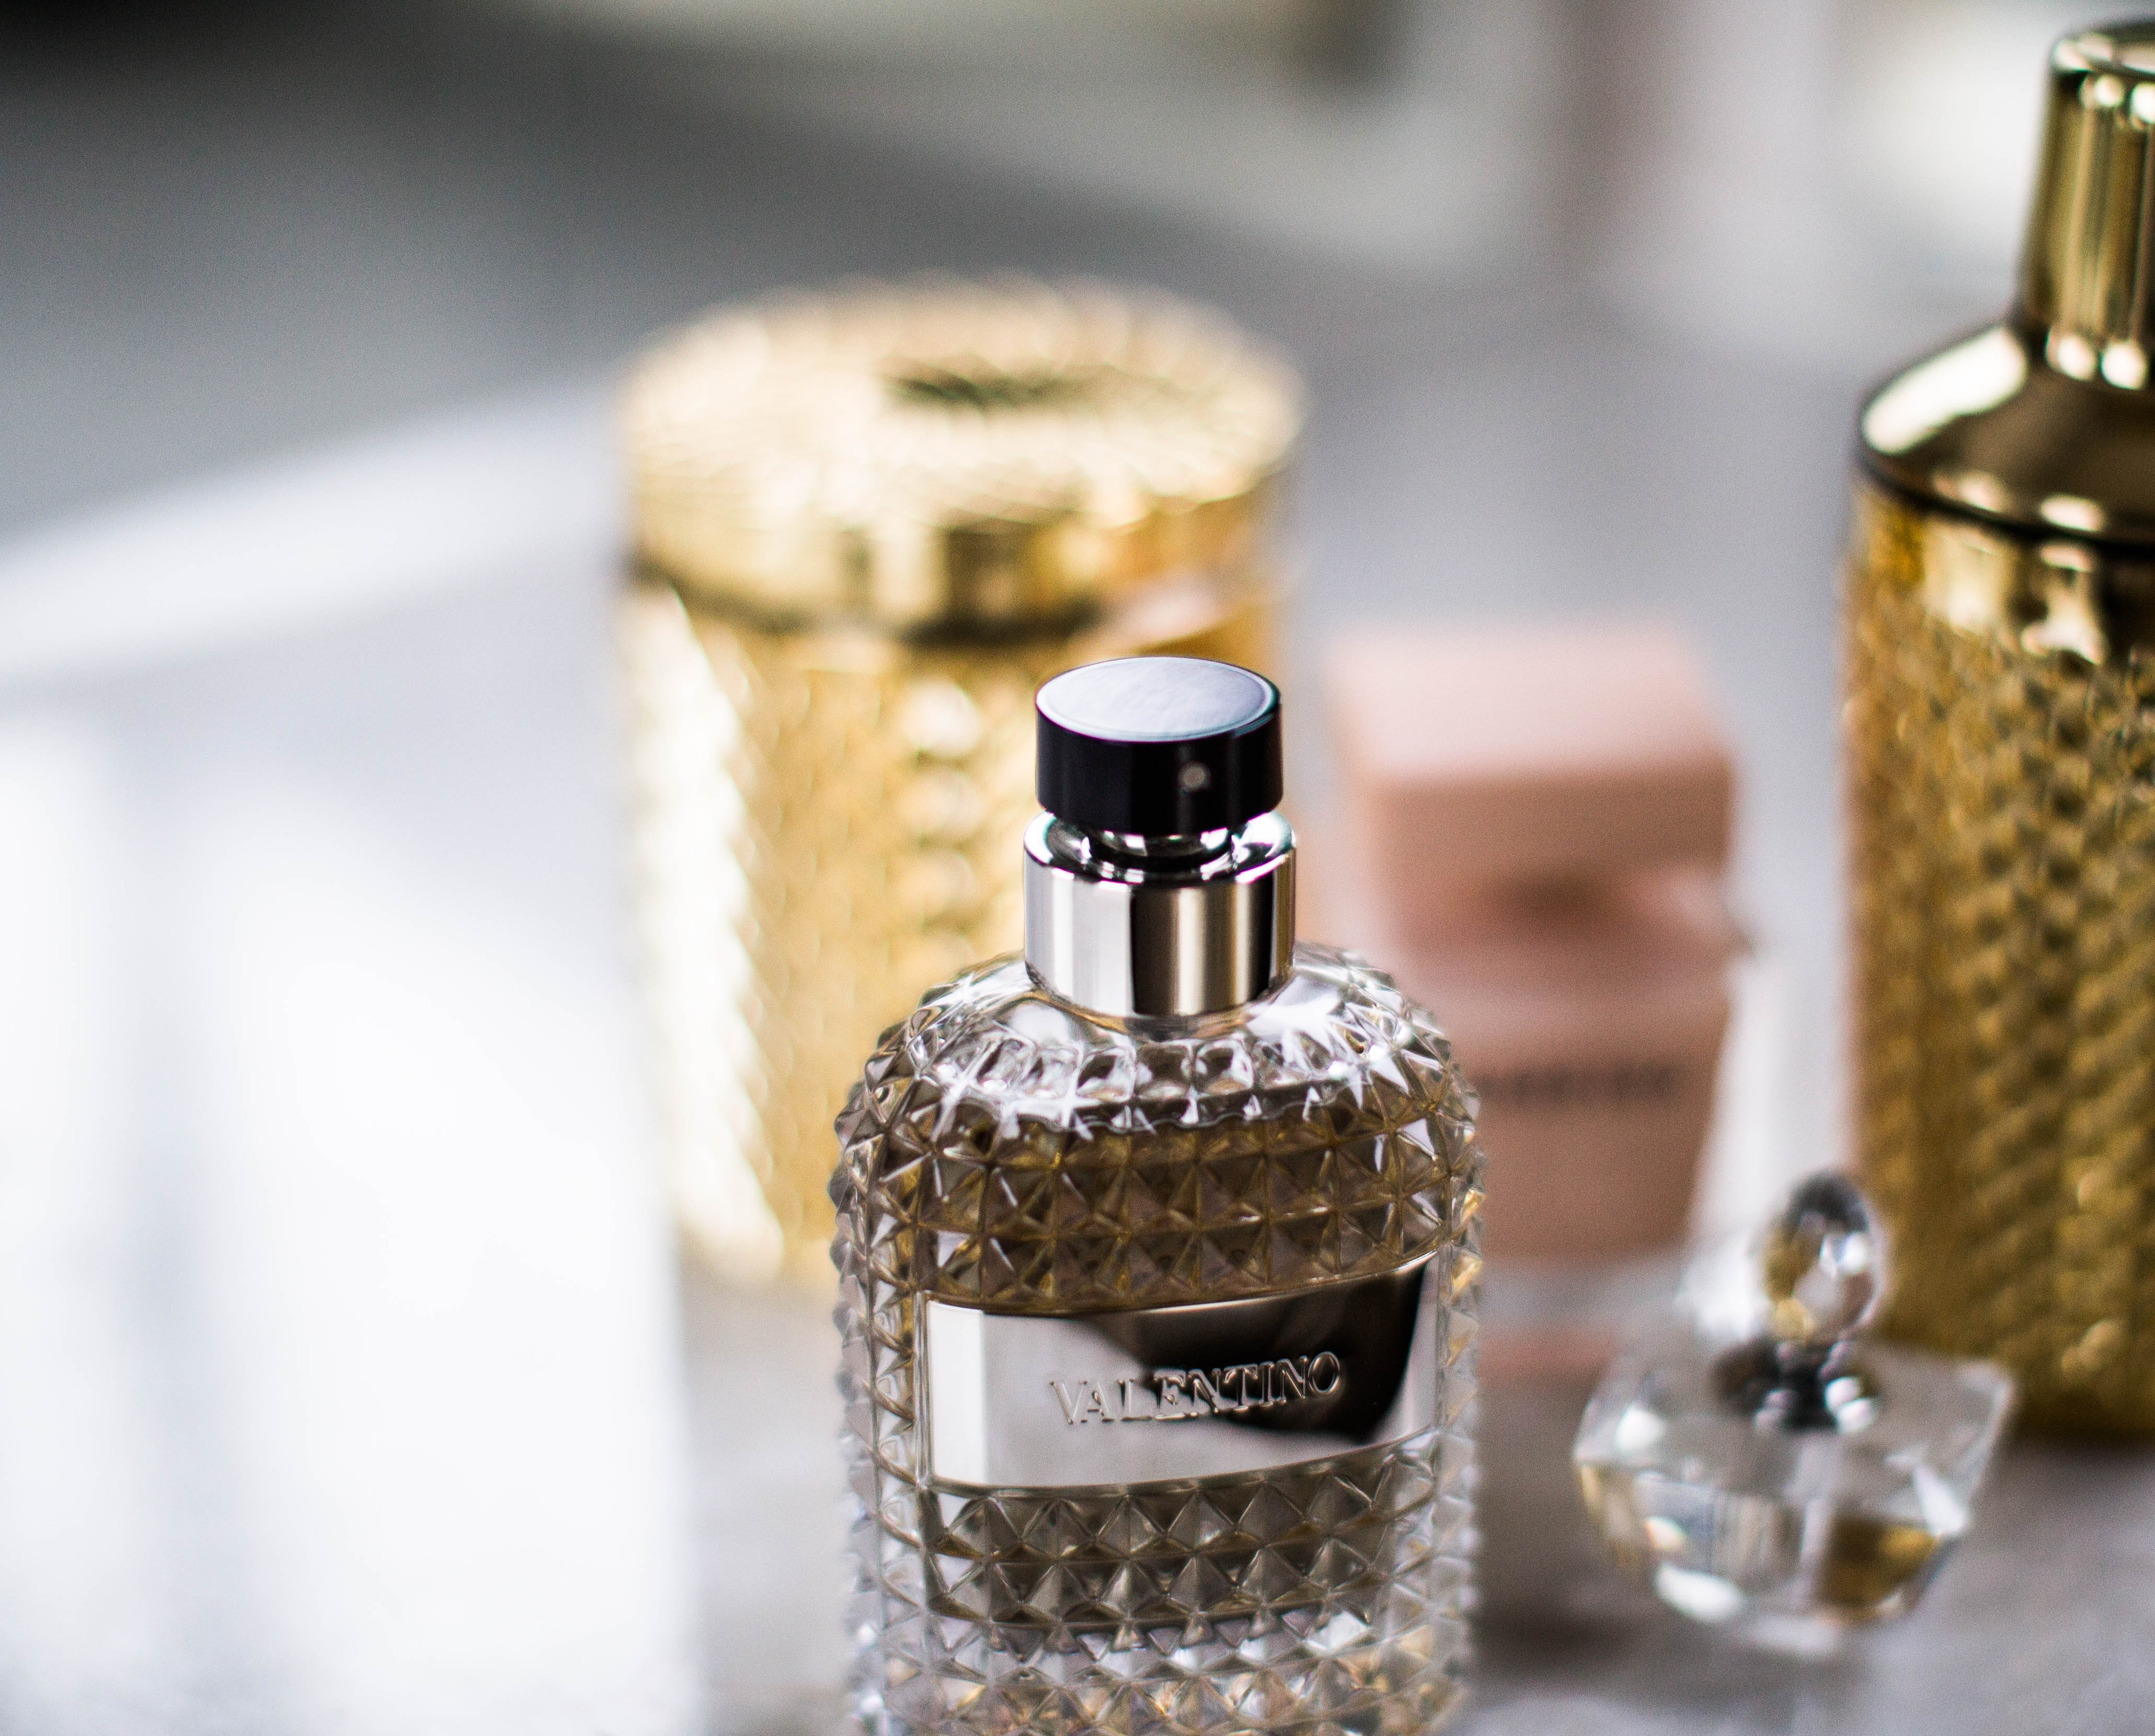 selective focus photo of Valentino fragrance bottle